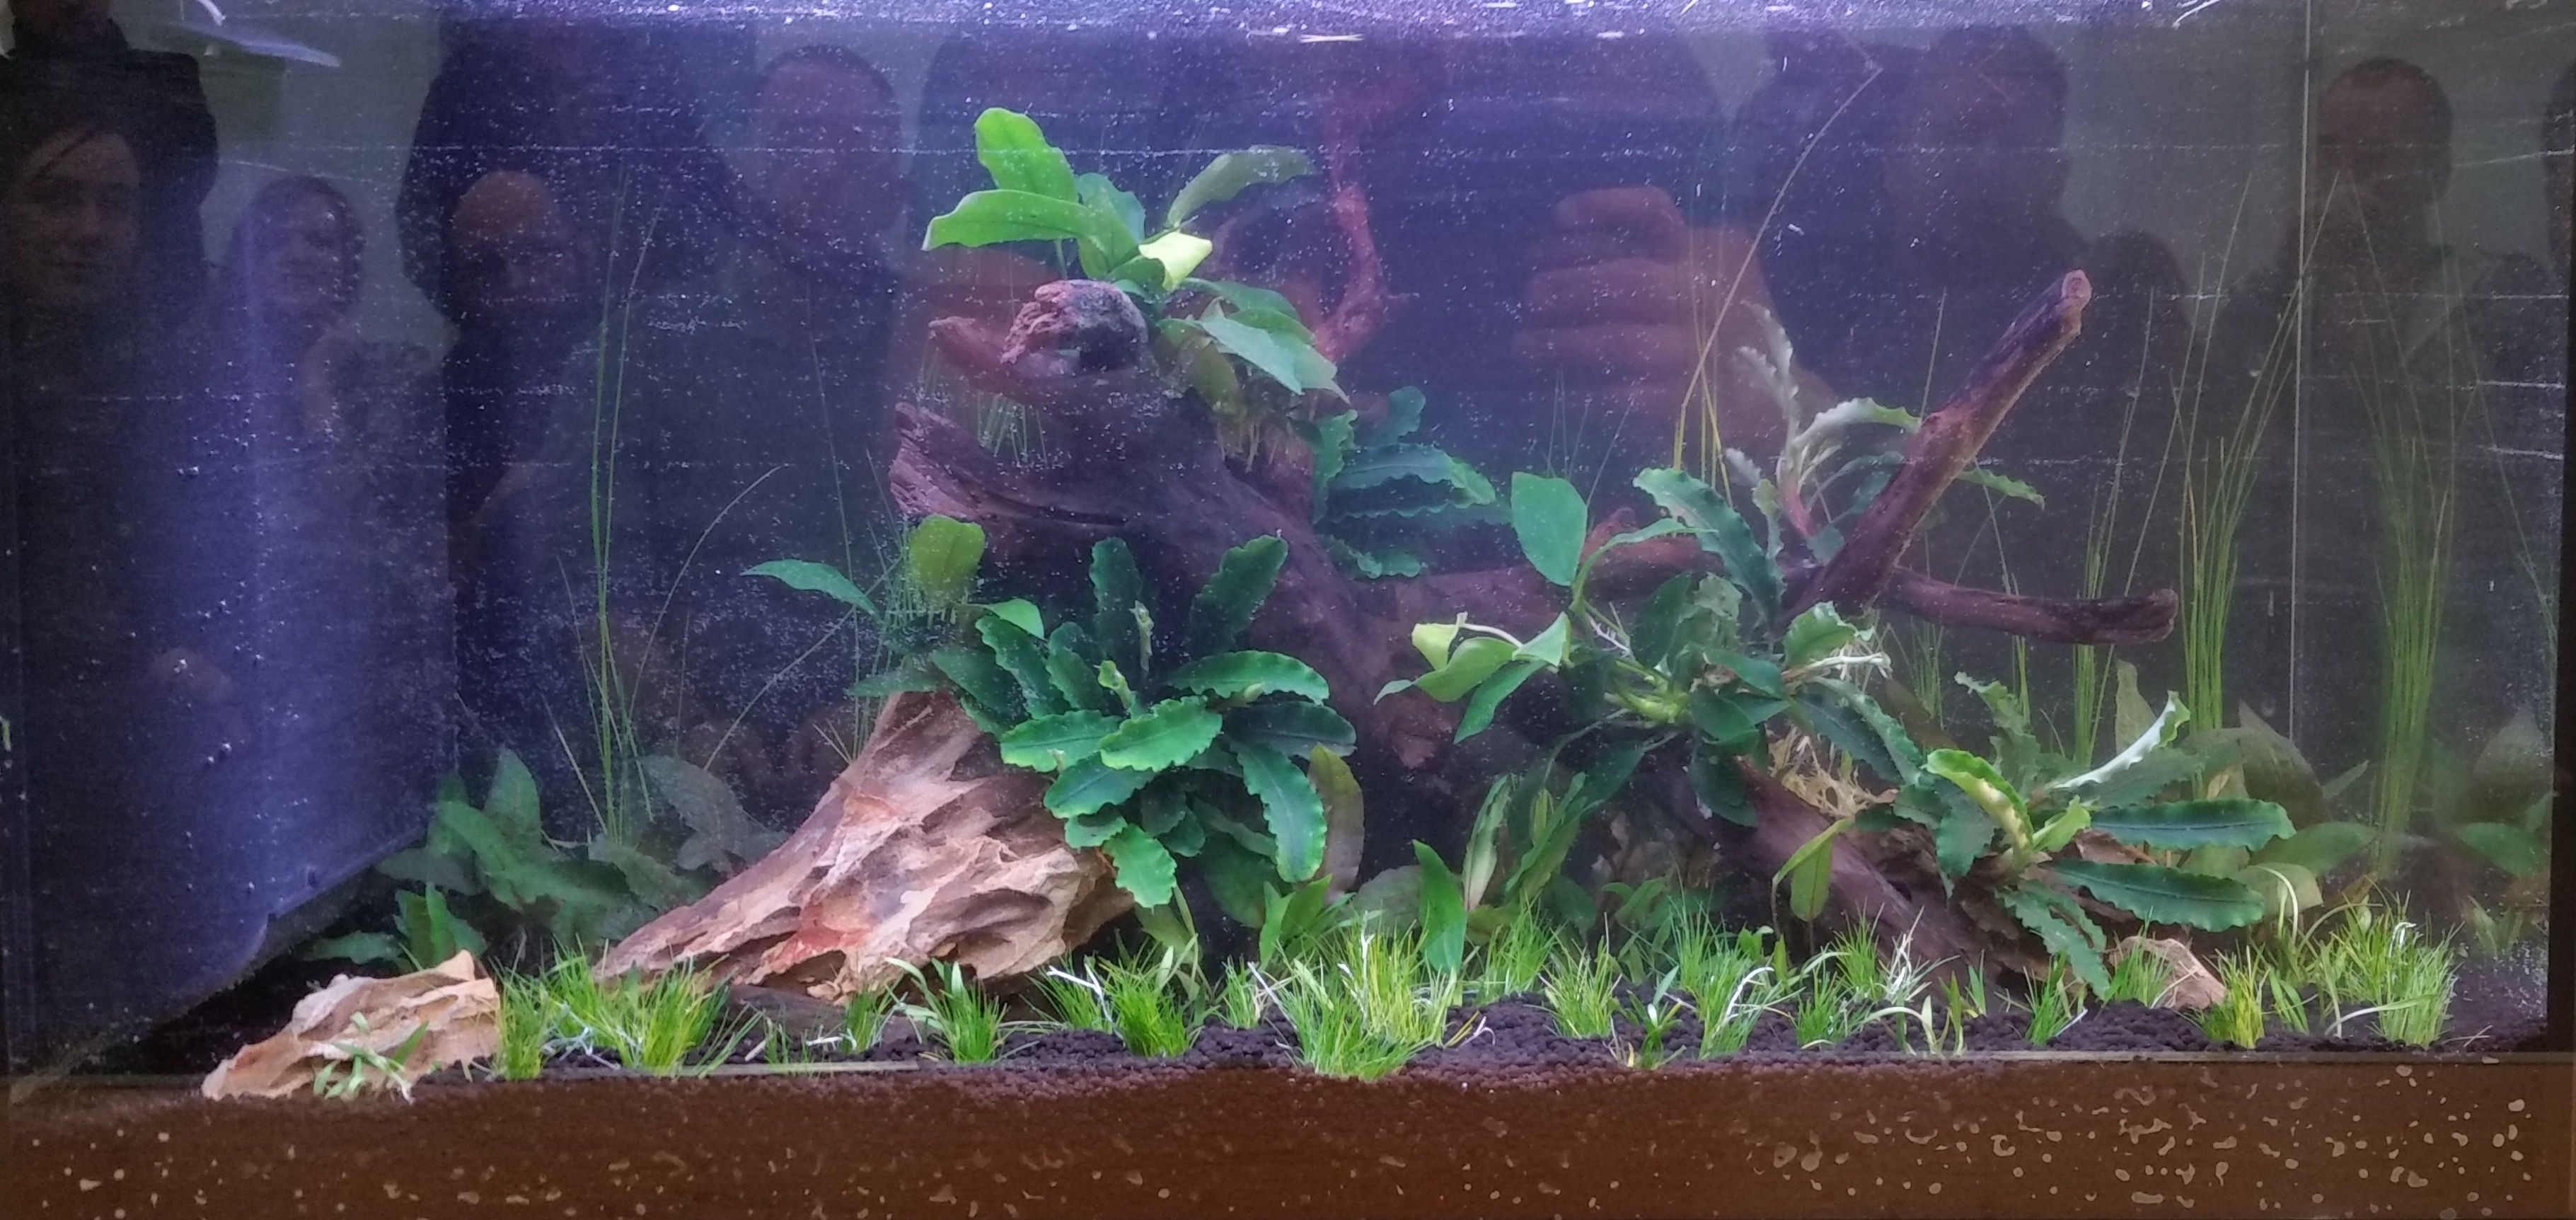 Freshwater aquarium fish help - Looking To Buy Aquarium Fish Tank Backdrops Online Ranging From 60 In Size Our Aquarium Backgrounds Are Priced From Just Free Uk Delivery